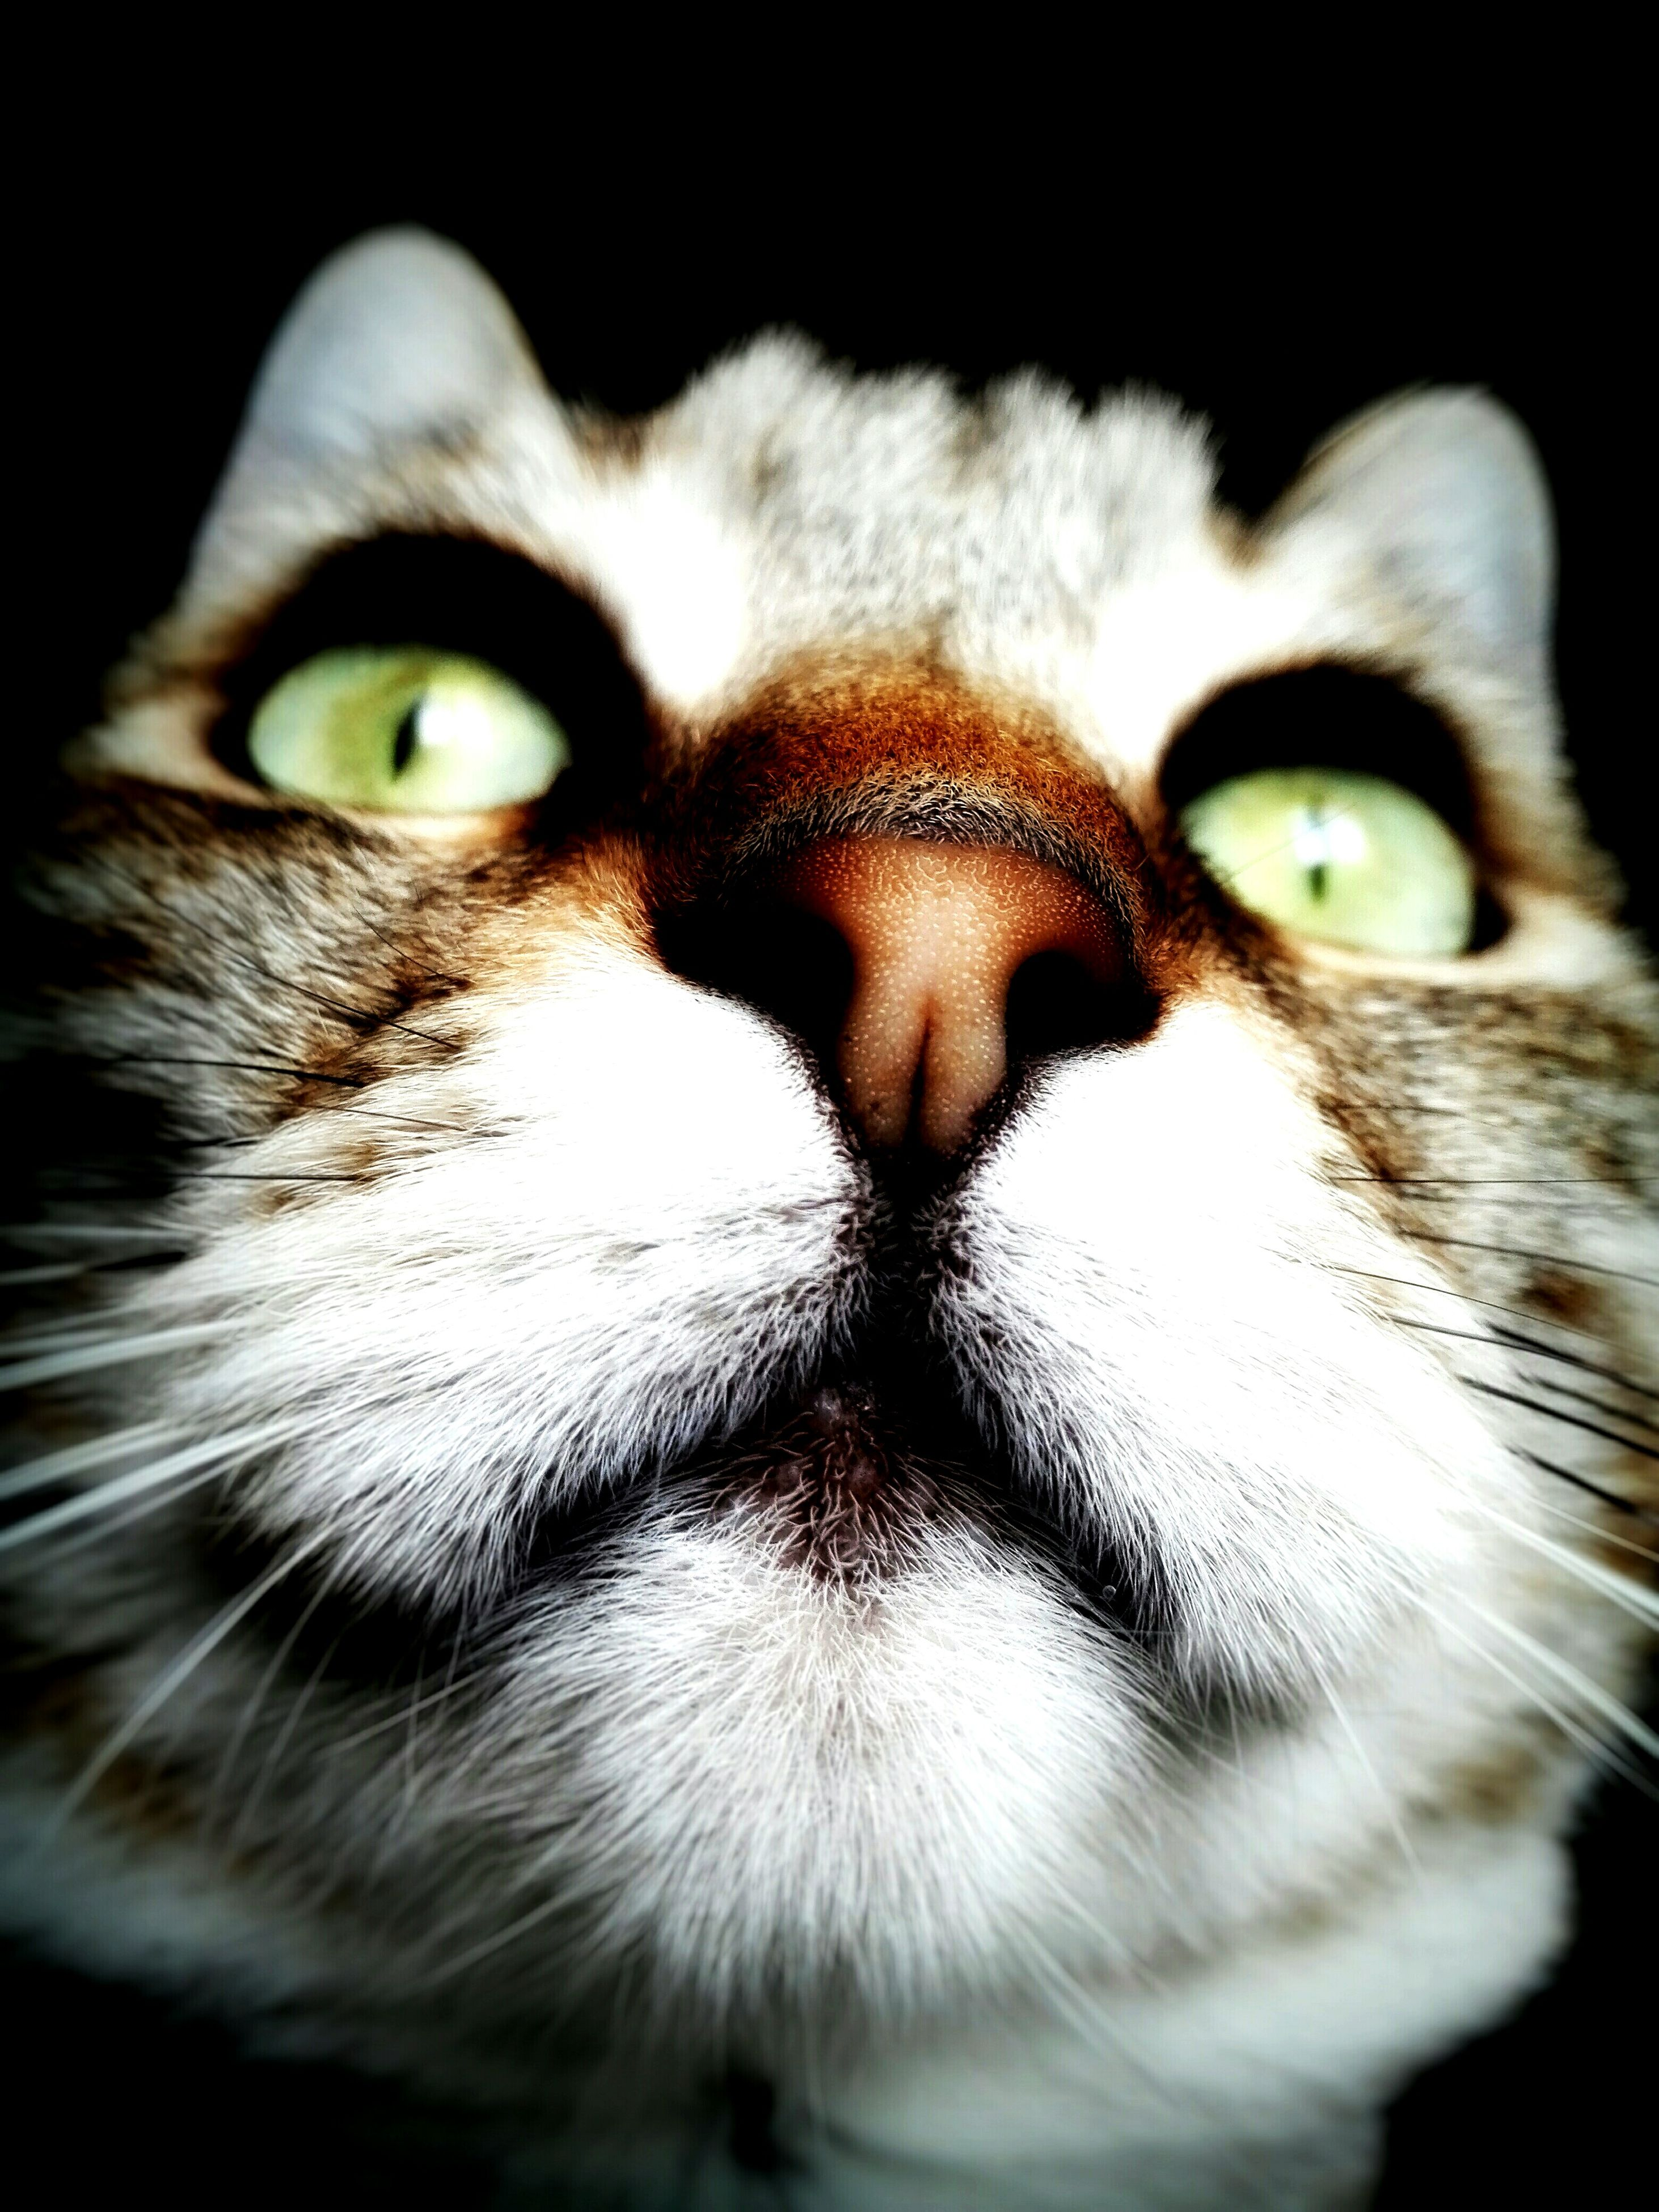 pets, one animal, animal themes, domestic animals, mammal, close-up, portrait, looking at camera, domestic cat, animal head, cat, whisker, animal body part, animal eye, feline, front view, focus on foreground, staring, studio shot, no people